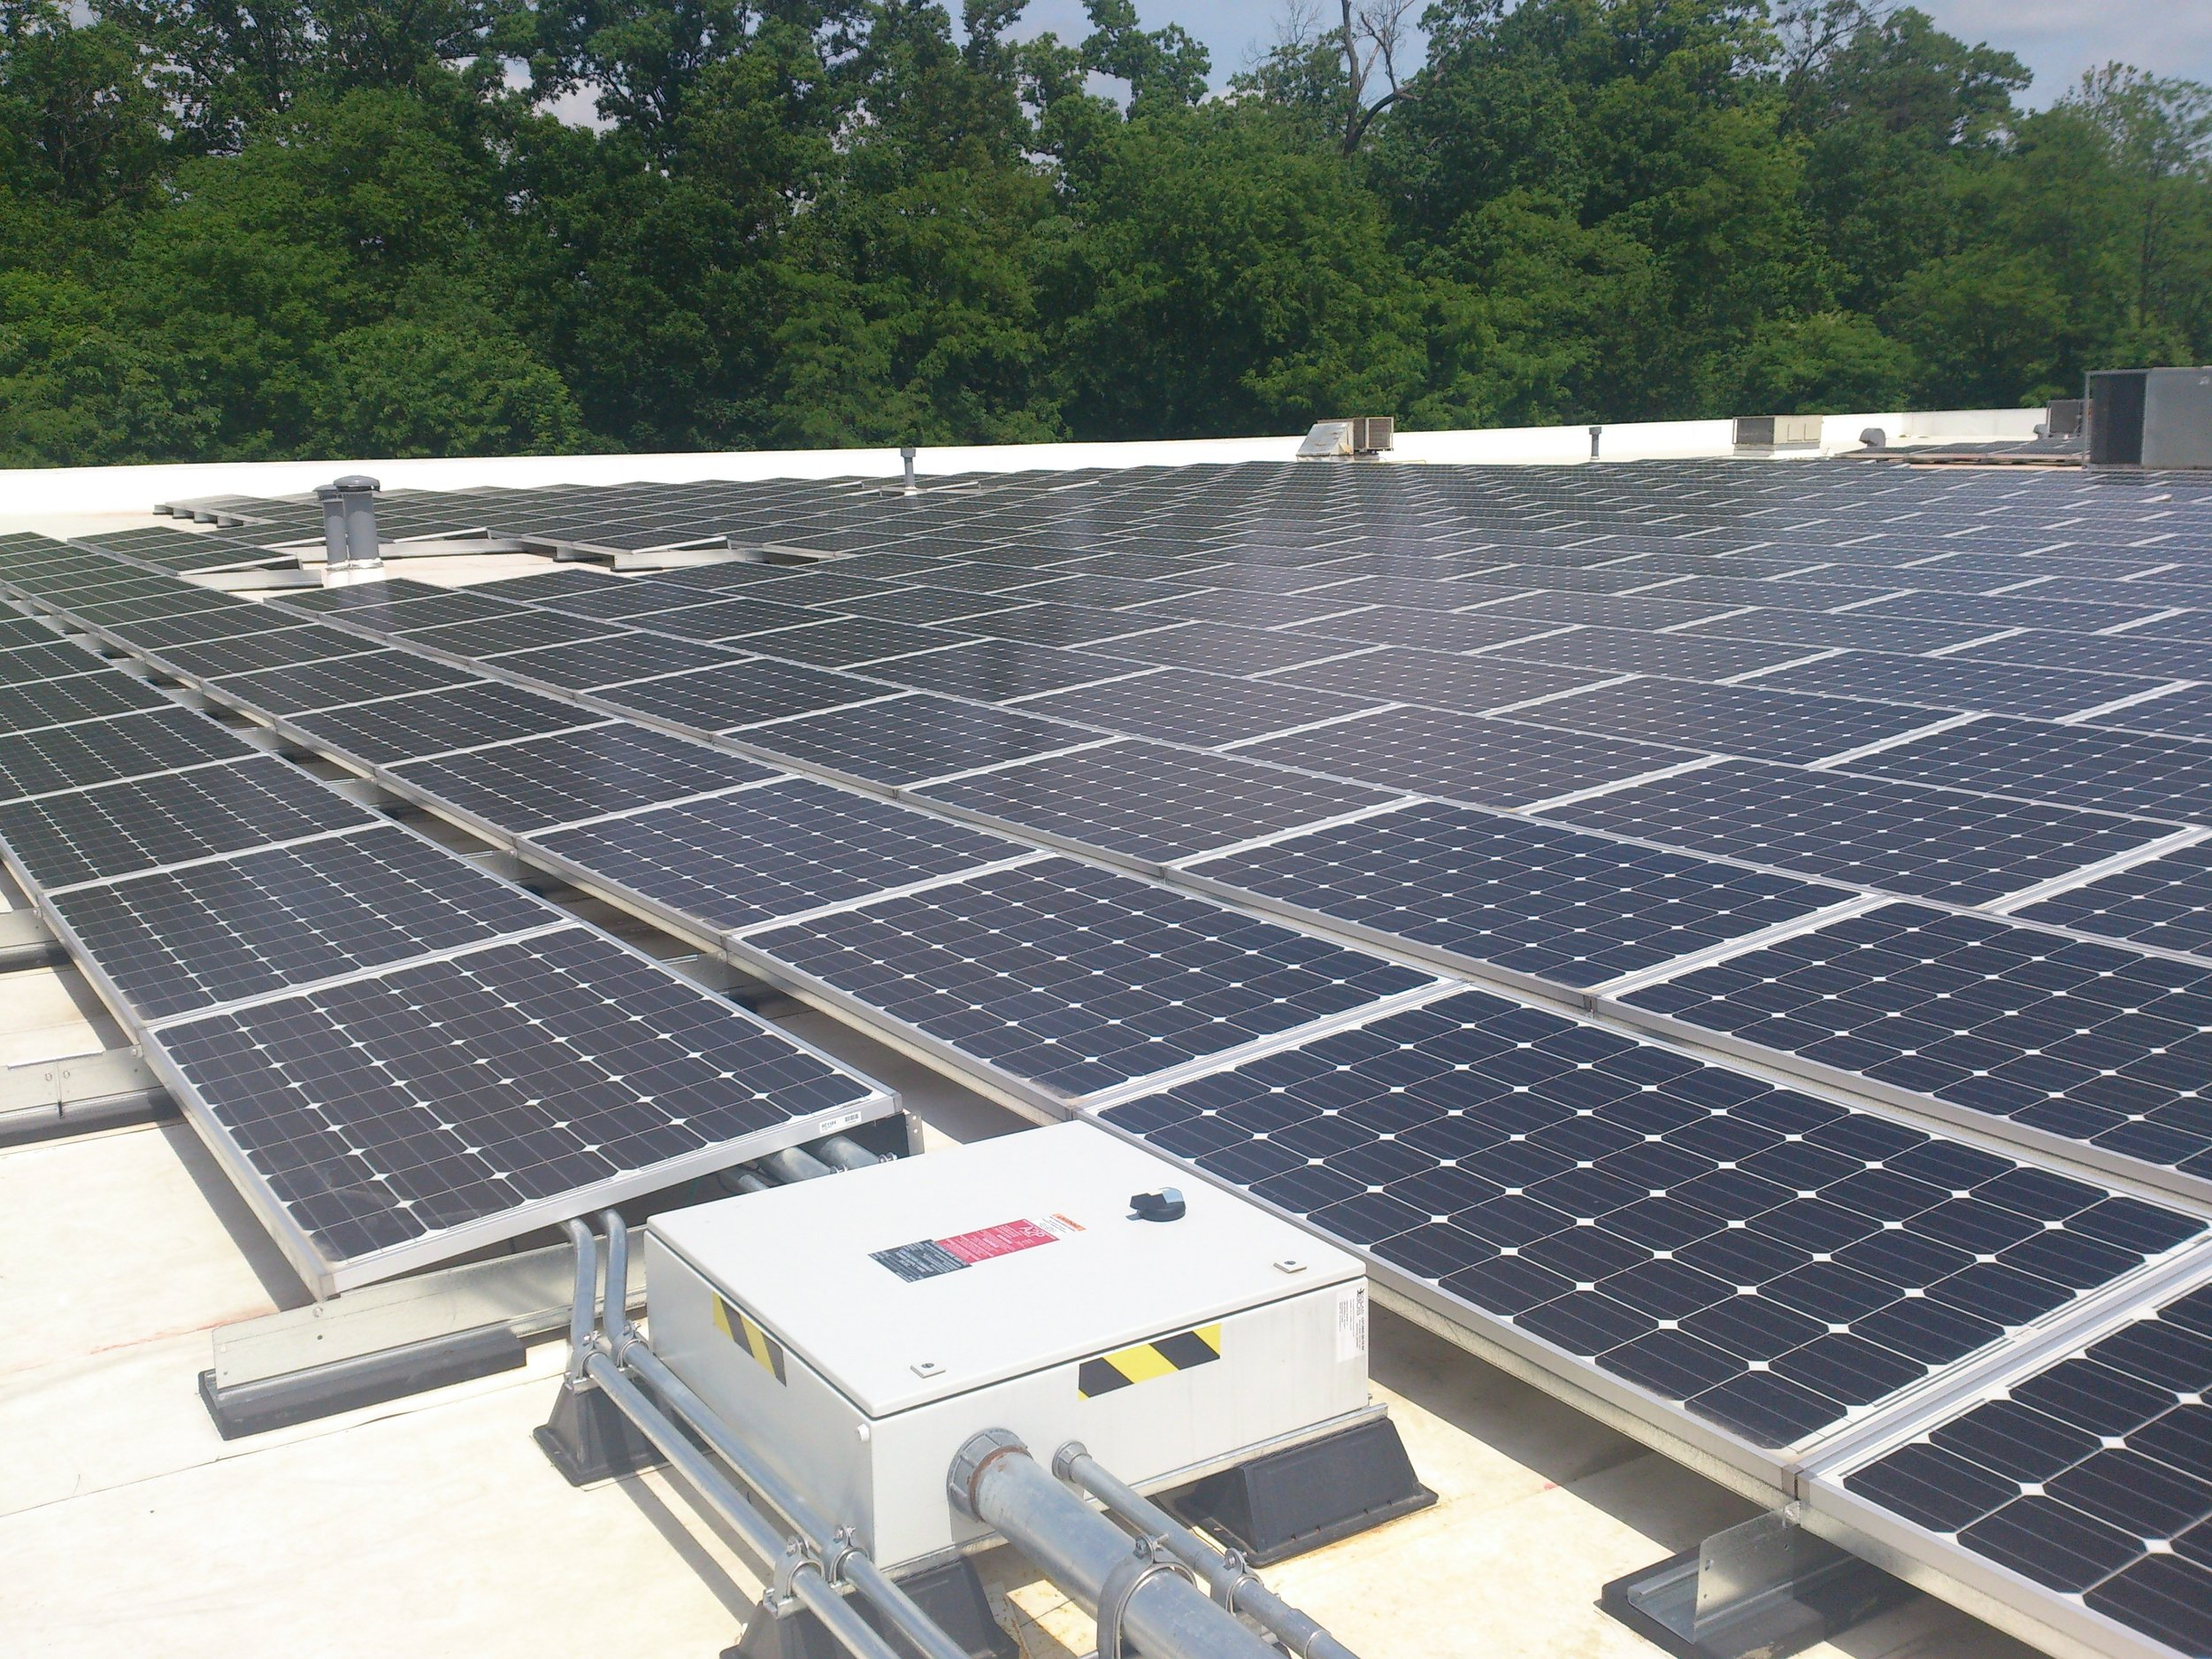 Roof Mounted Solar - ANTARES has assisted Dominion Energy install rooftop and ground-mounted solar across Virginia and the Carolinas